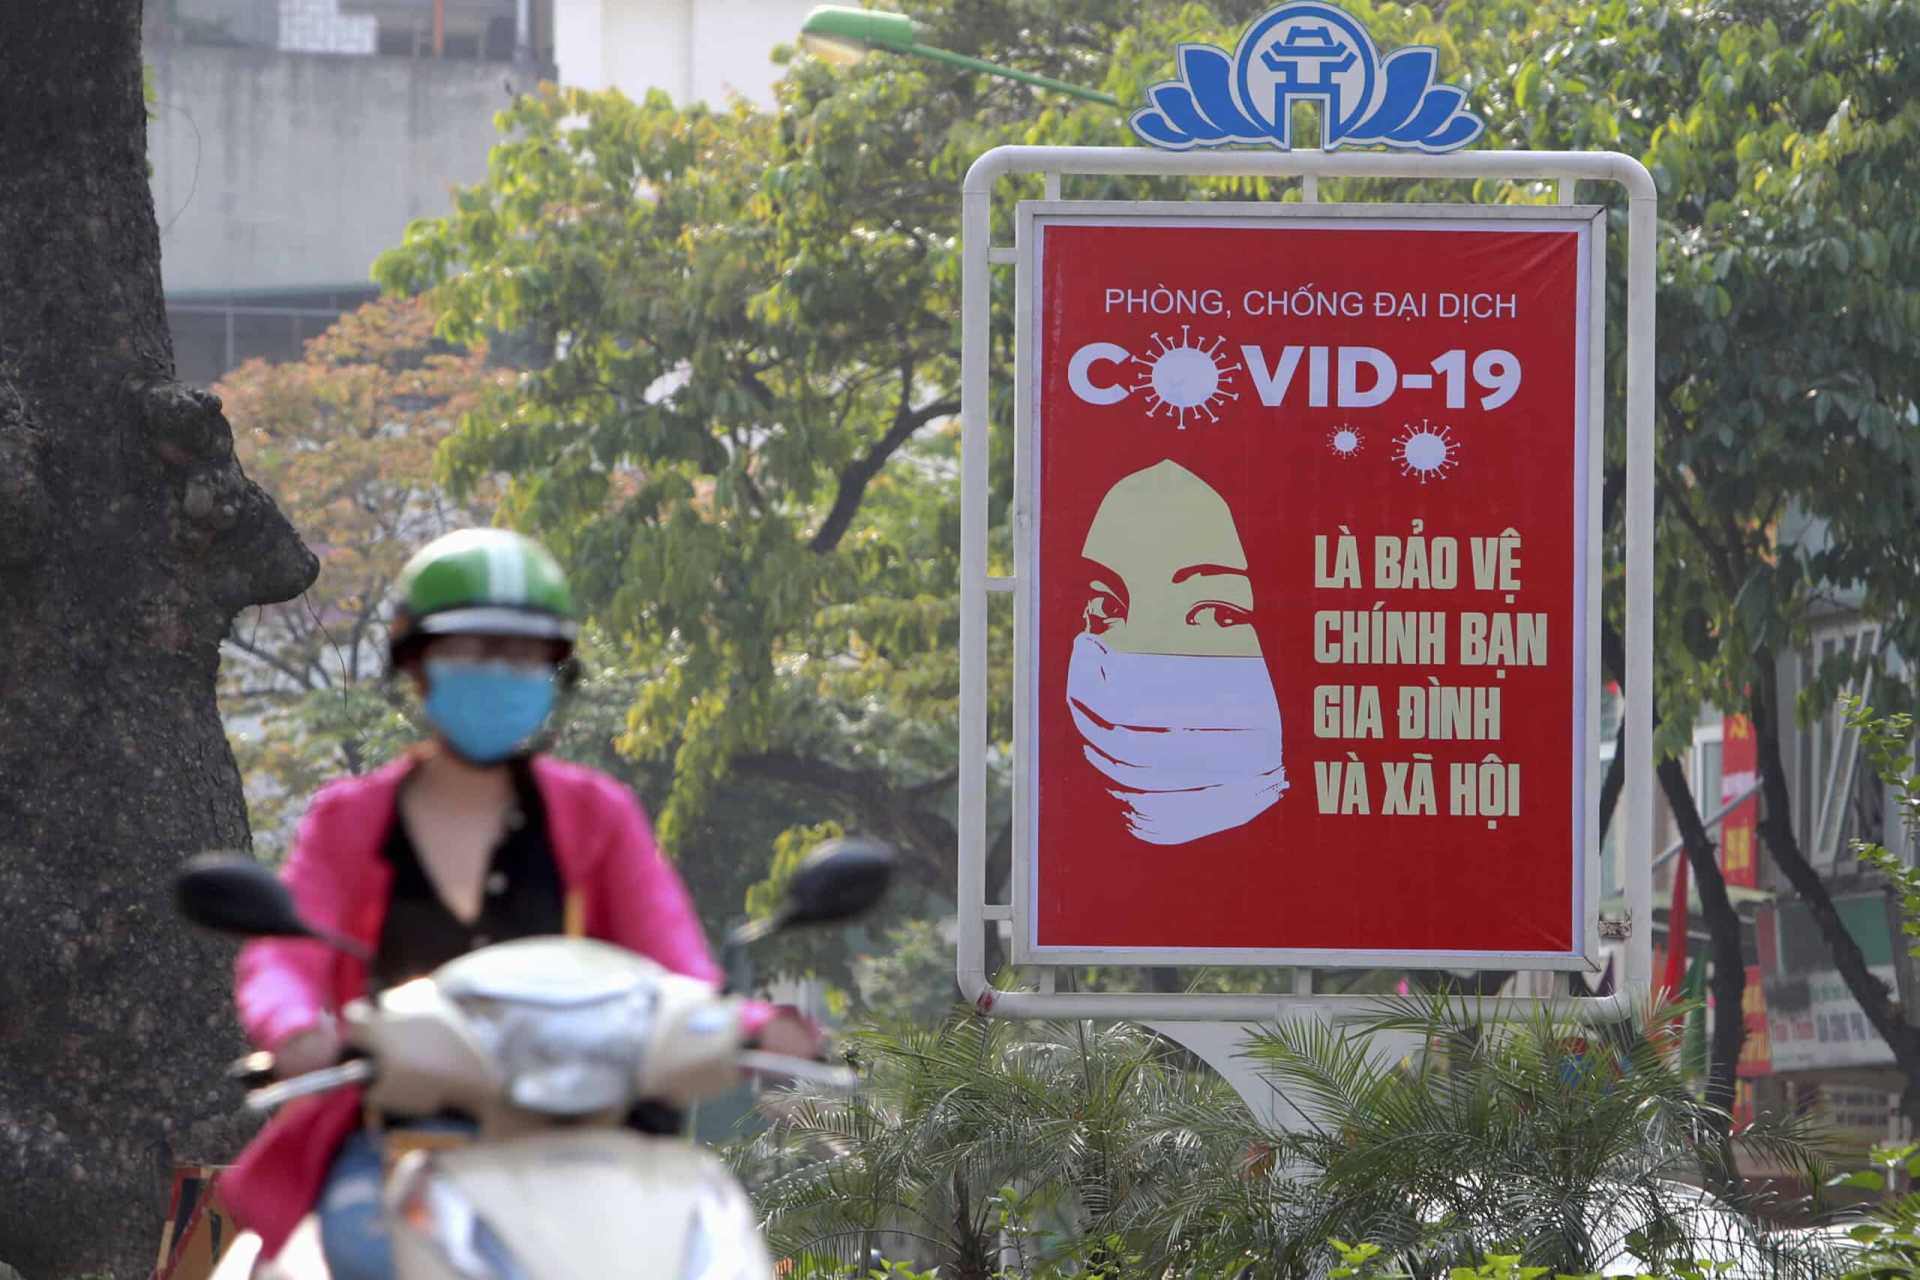 india today firms moving from china to vietnam is a lesson for india